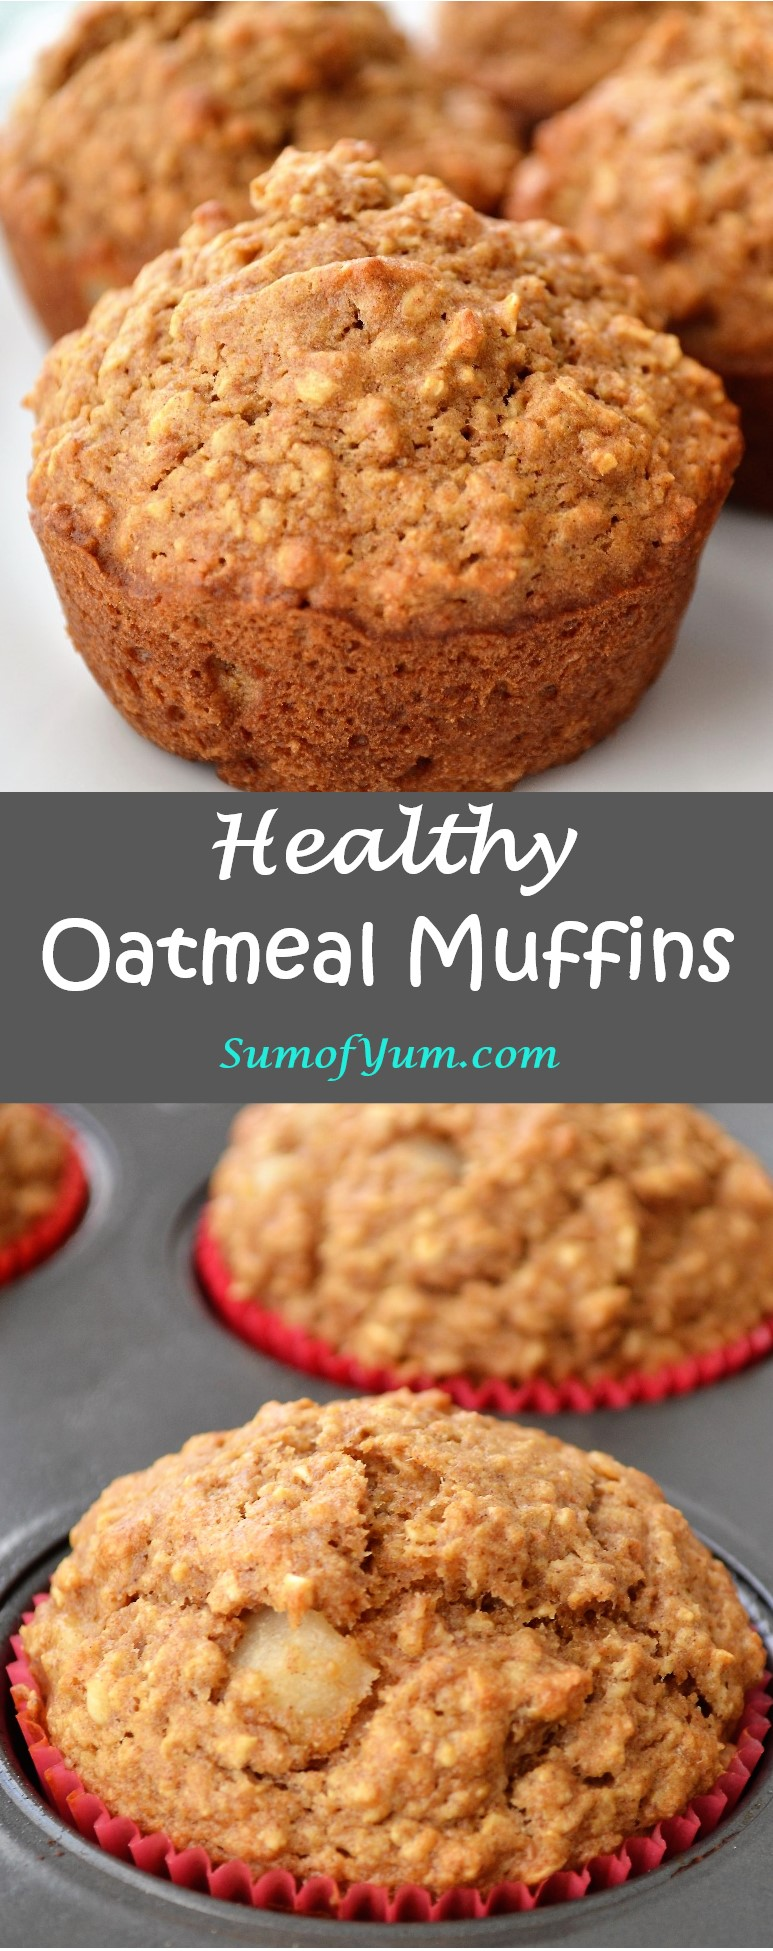 Healthy Oatmeal Muffins Recipe The Sum Of Yum